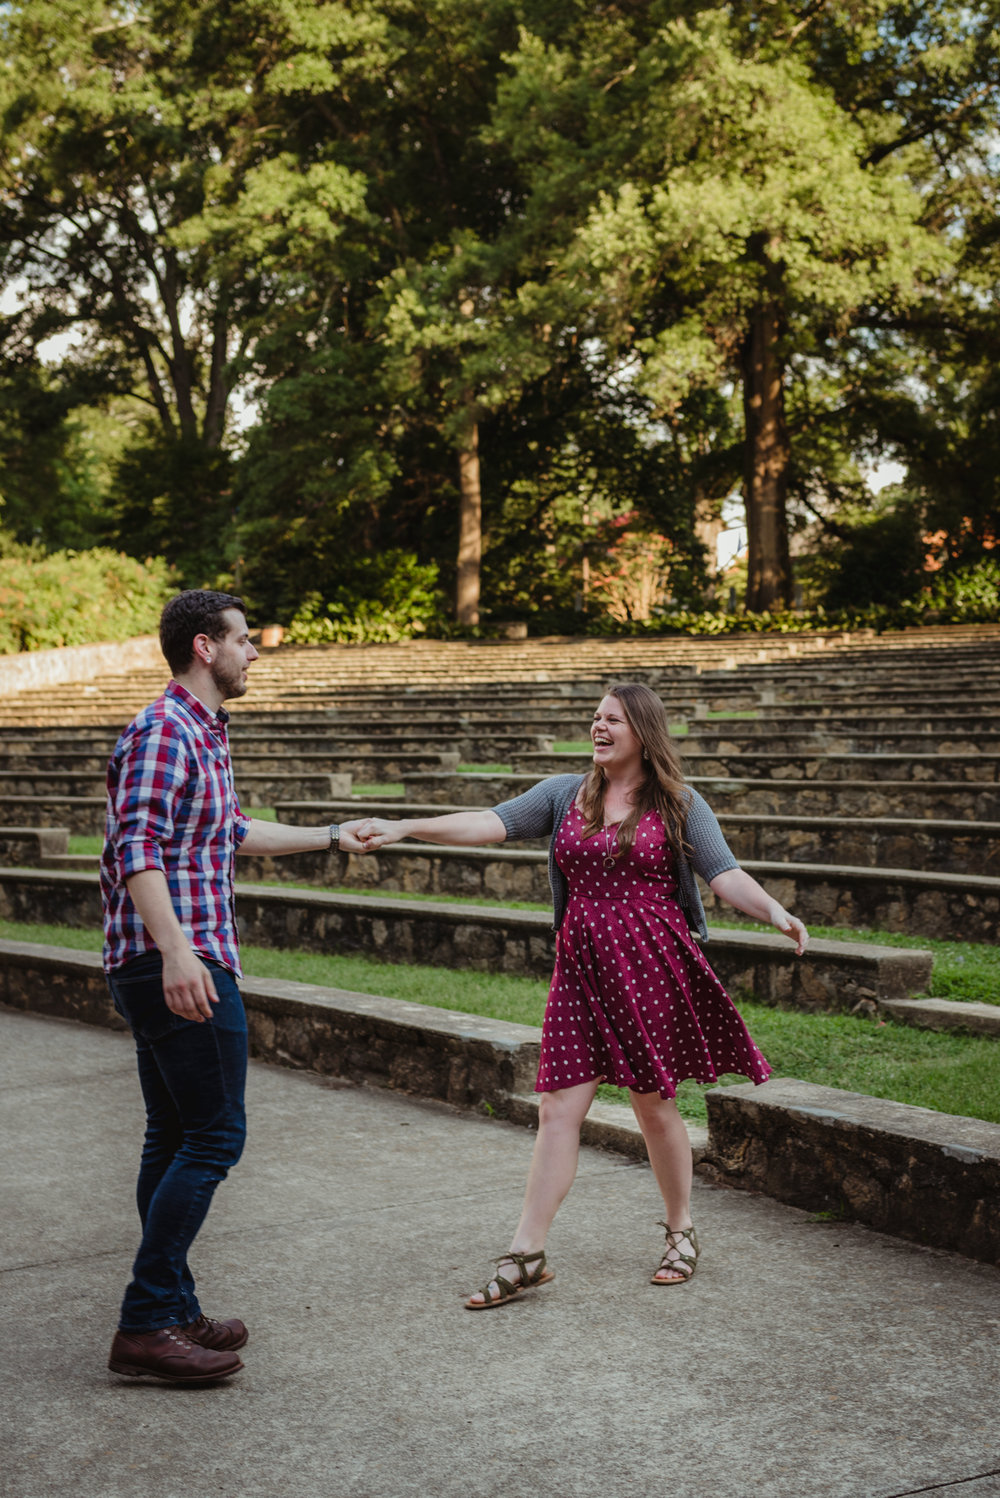 The bride and groom to be practice their first dance by twirling and laughing at the Little Theater at the Raleigh Rose Garden during their engagement session with Rose Trail Images.